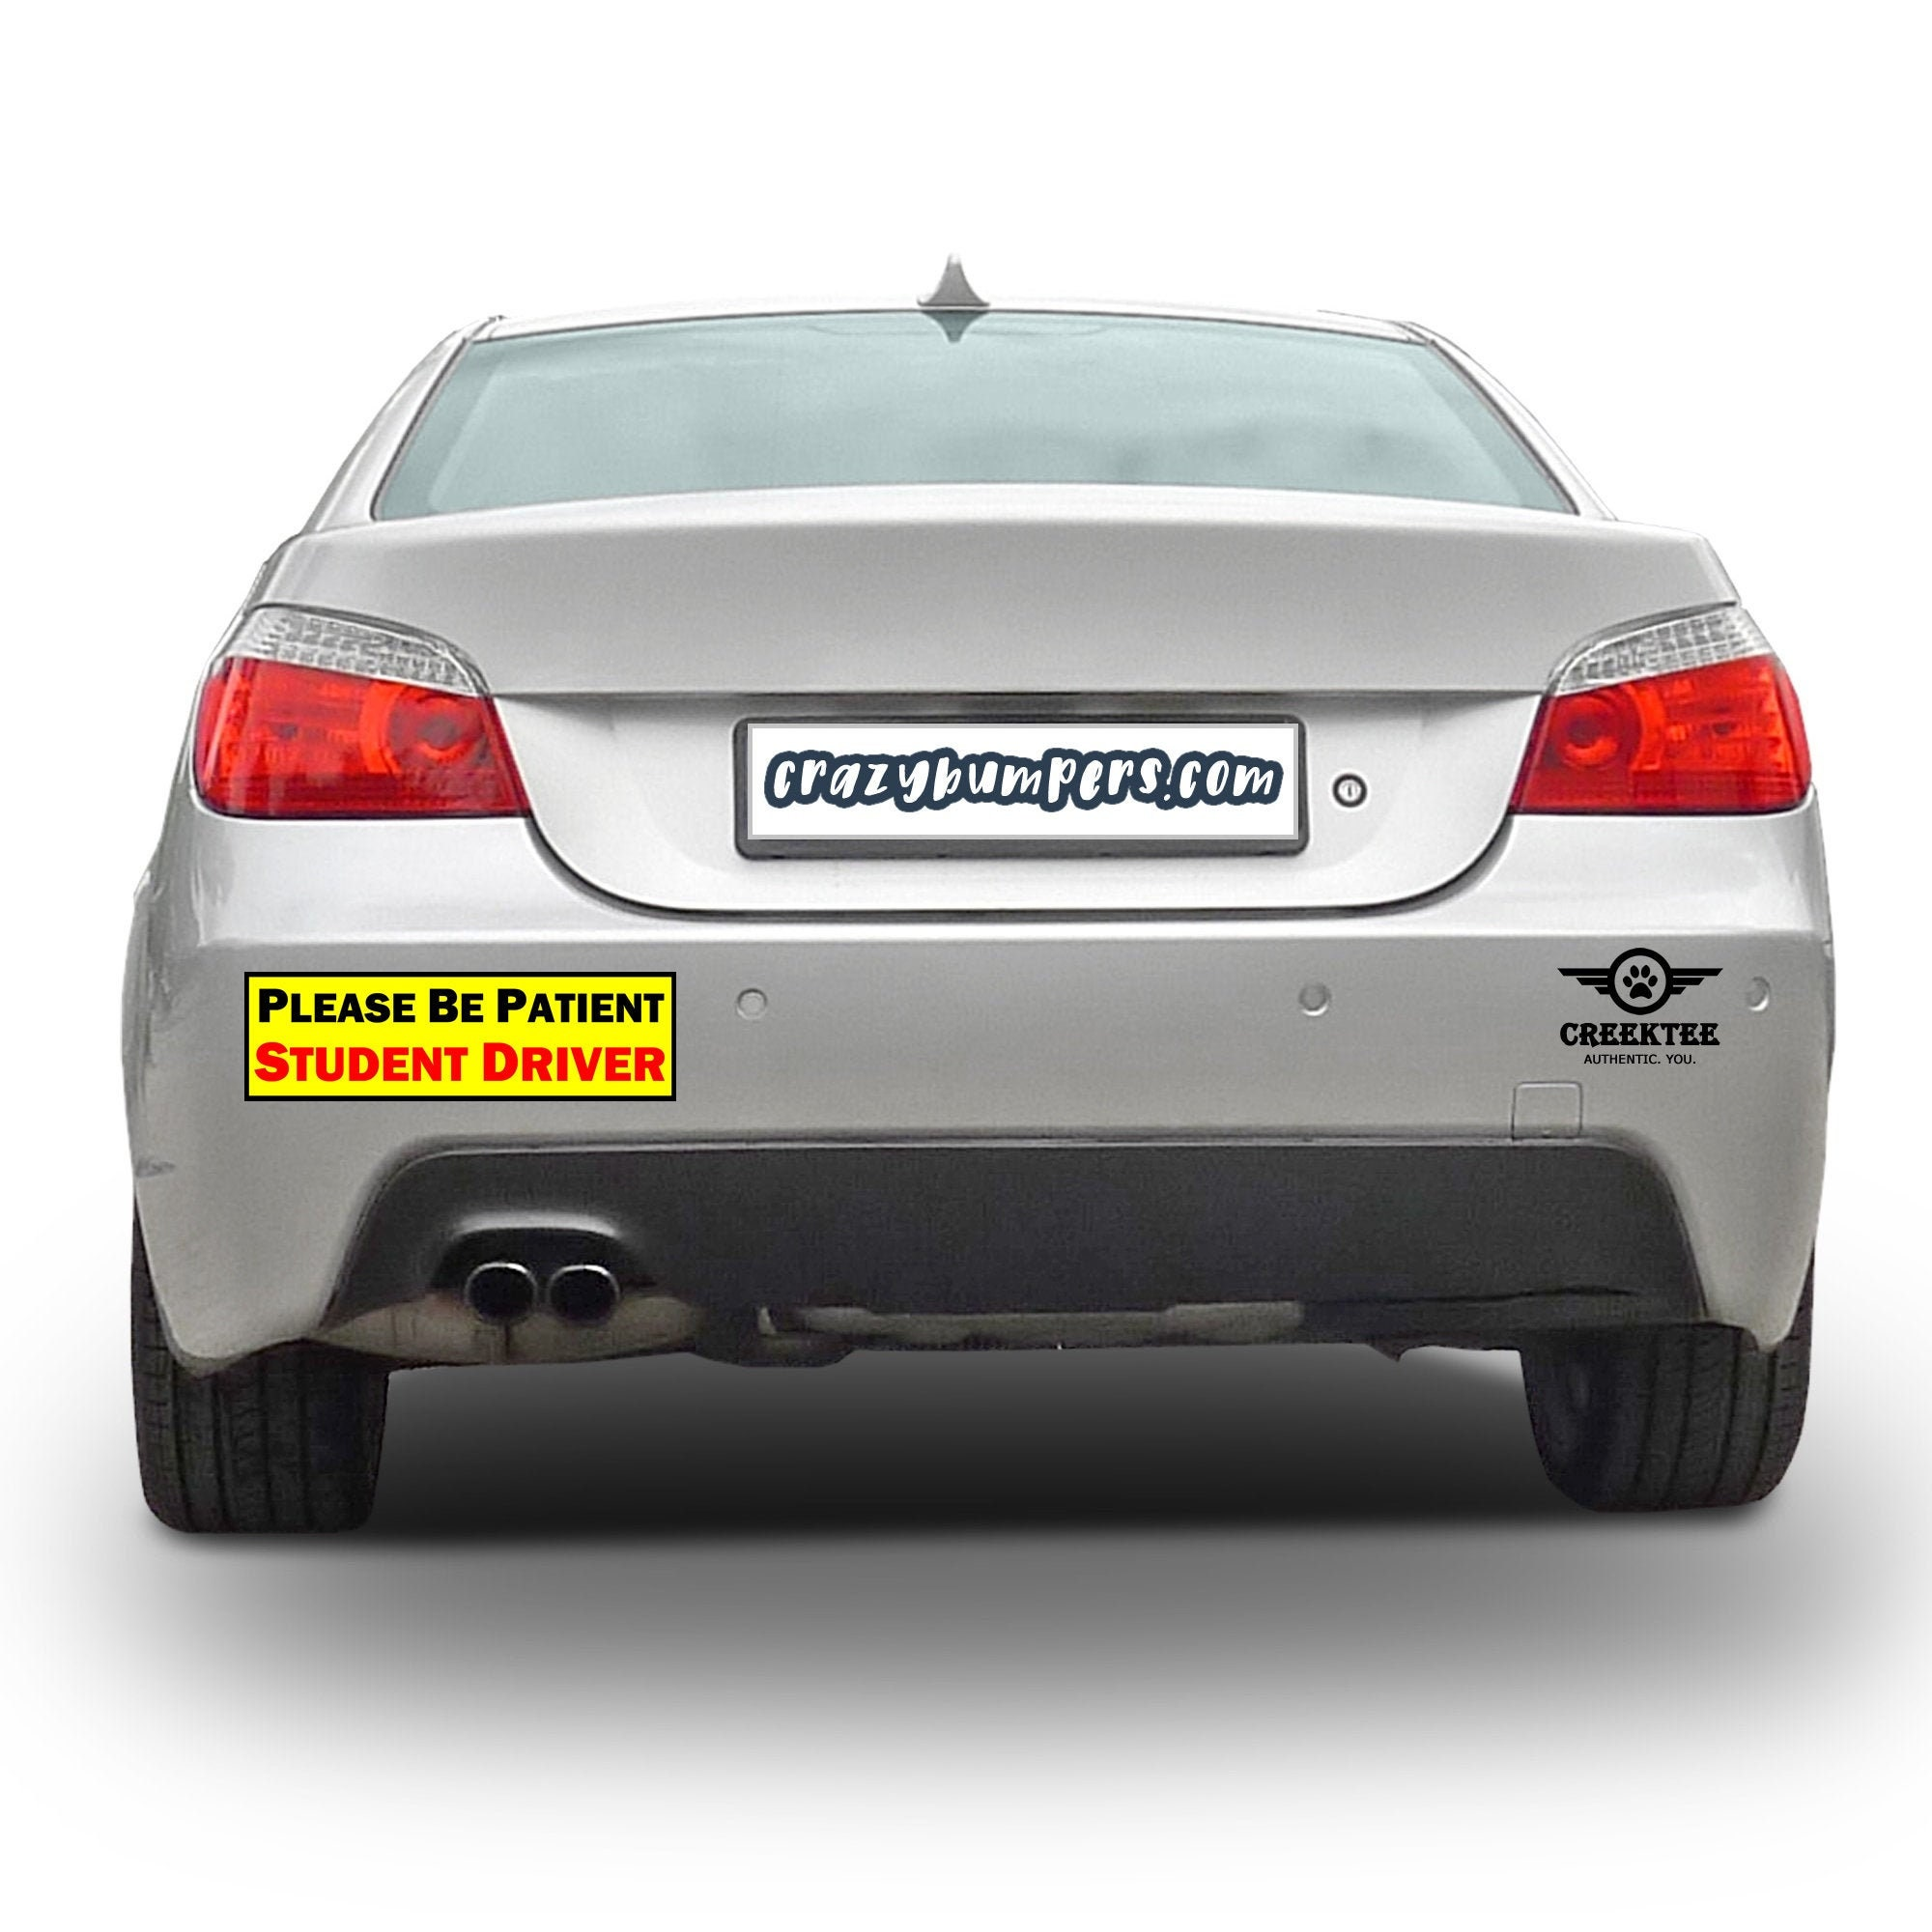 CAD$9.99 - Please Be Patient Student Driver Bumper Sticker 10 x 3 Bumper Sticker or Magnetic Bumper Sticker Available